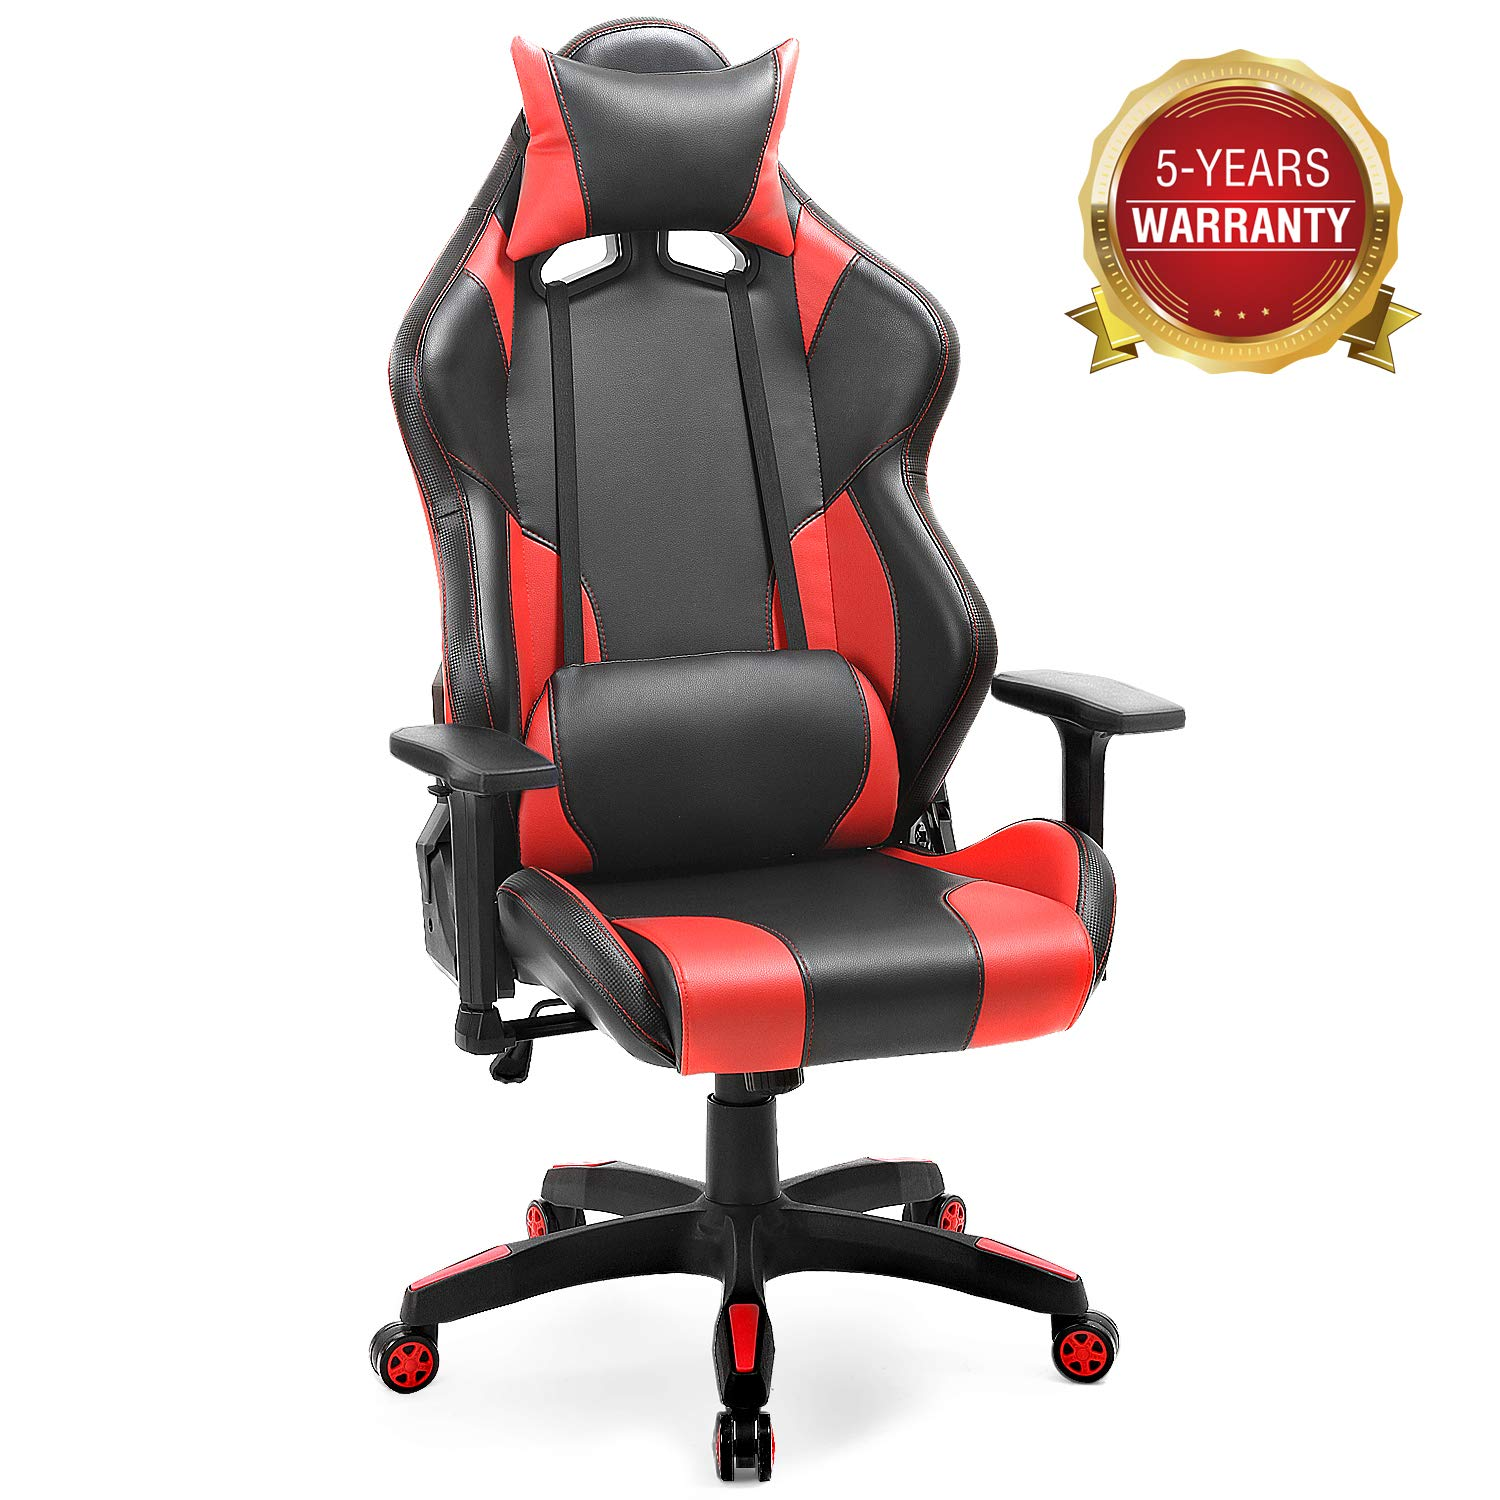 Computer Gaming Chair- Big and Tall Office Desk Chair with 3D Armrests and Adjustable Headrest, Ergonomic Swivel Drafting Task Chair with Lumbar Support,Hold Up to 400lbs